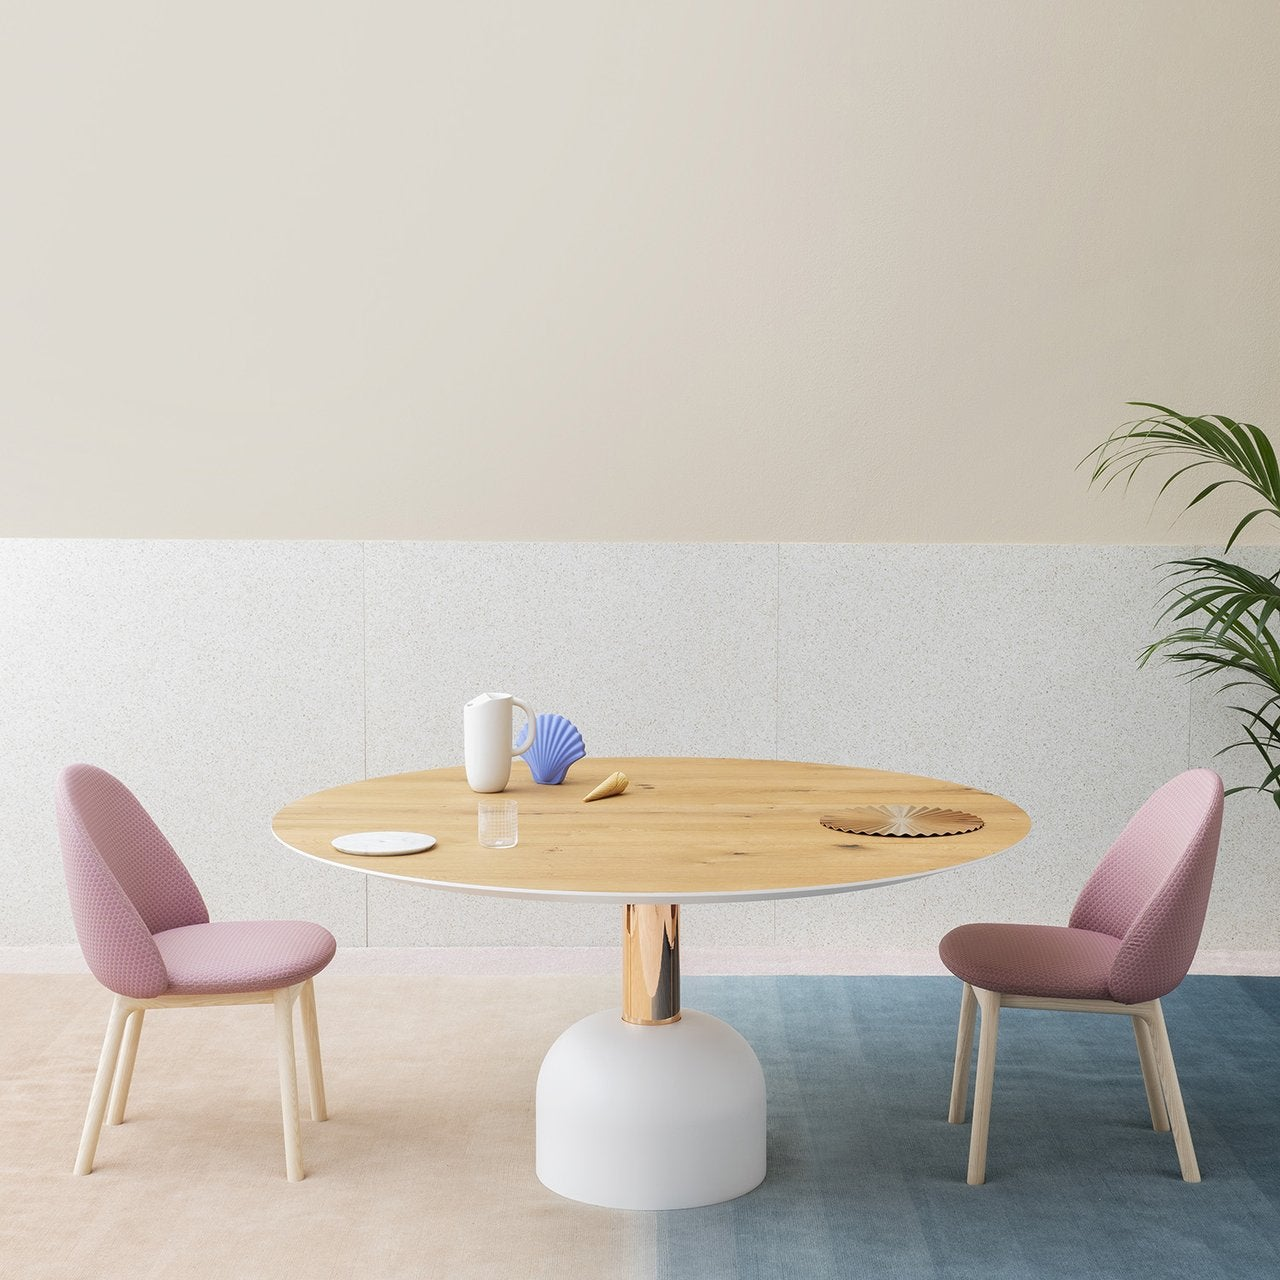 FEATURED_Illo Large Round Dining Table 2